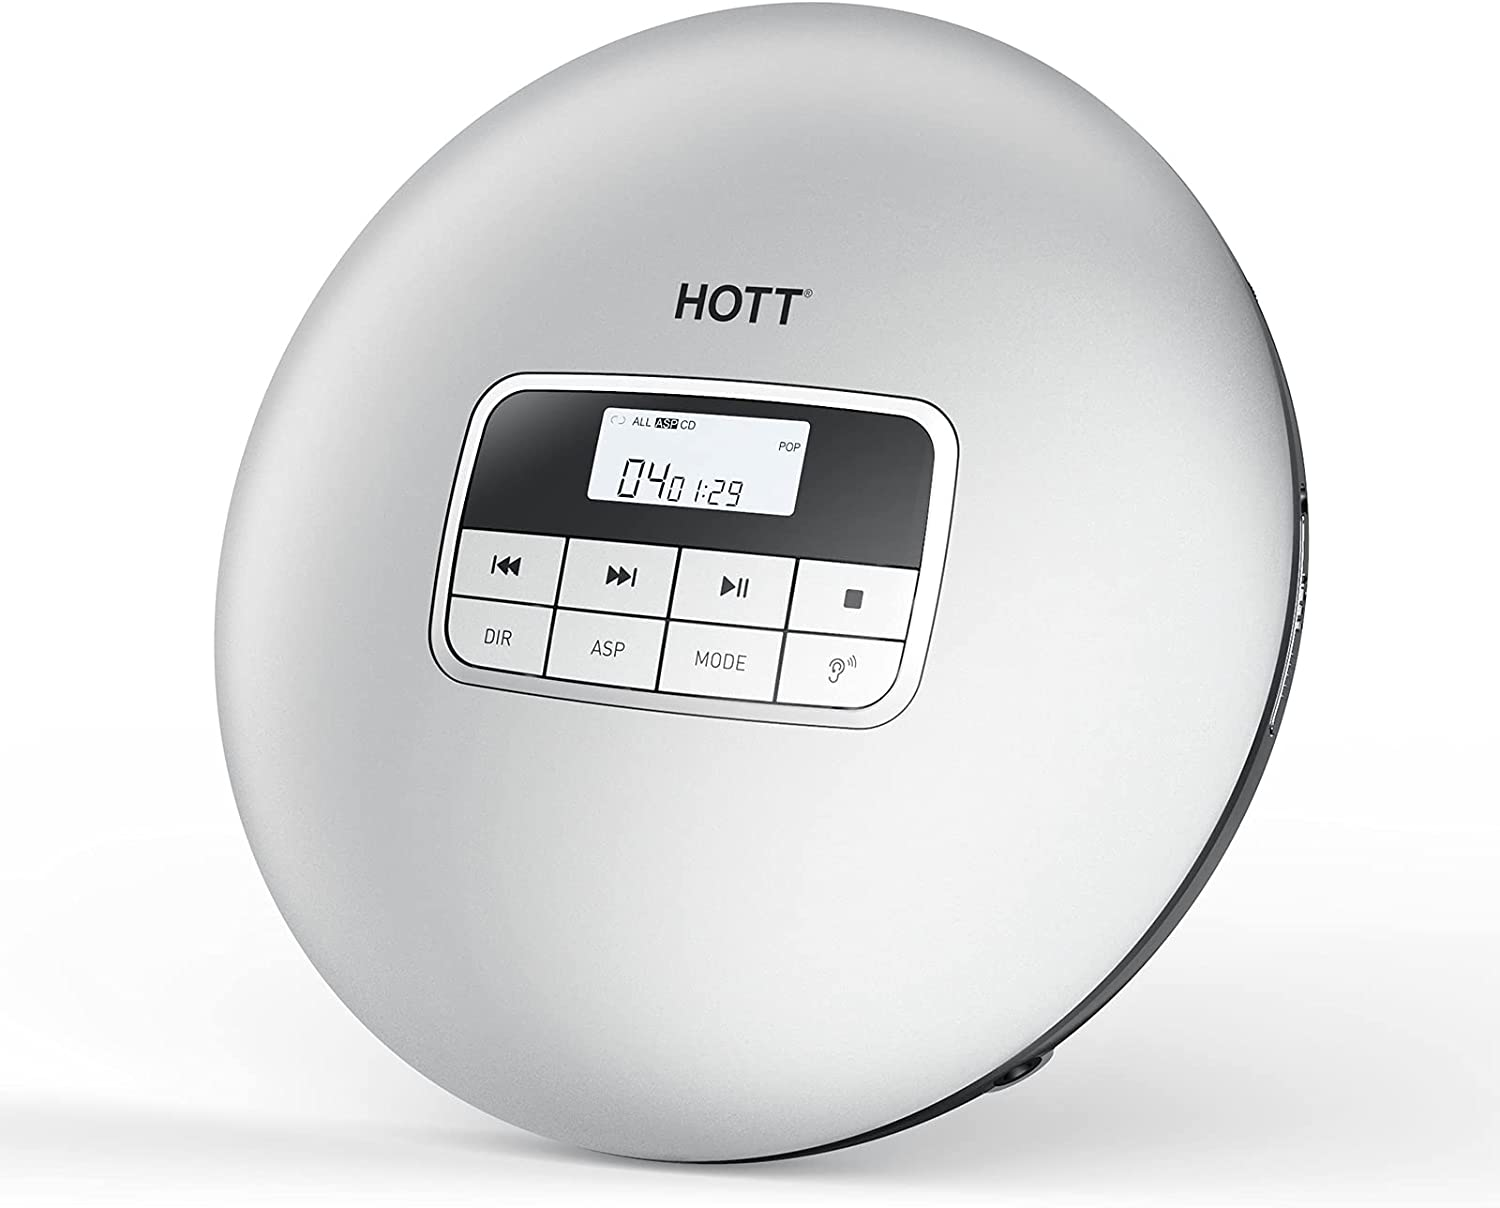 Save money HOTT CD511 Portable Excellence CD Player with Personal H Compact